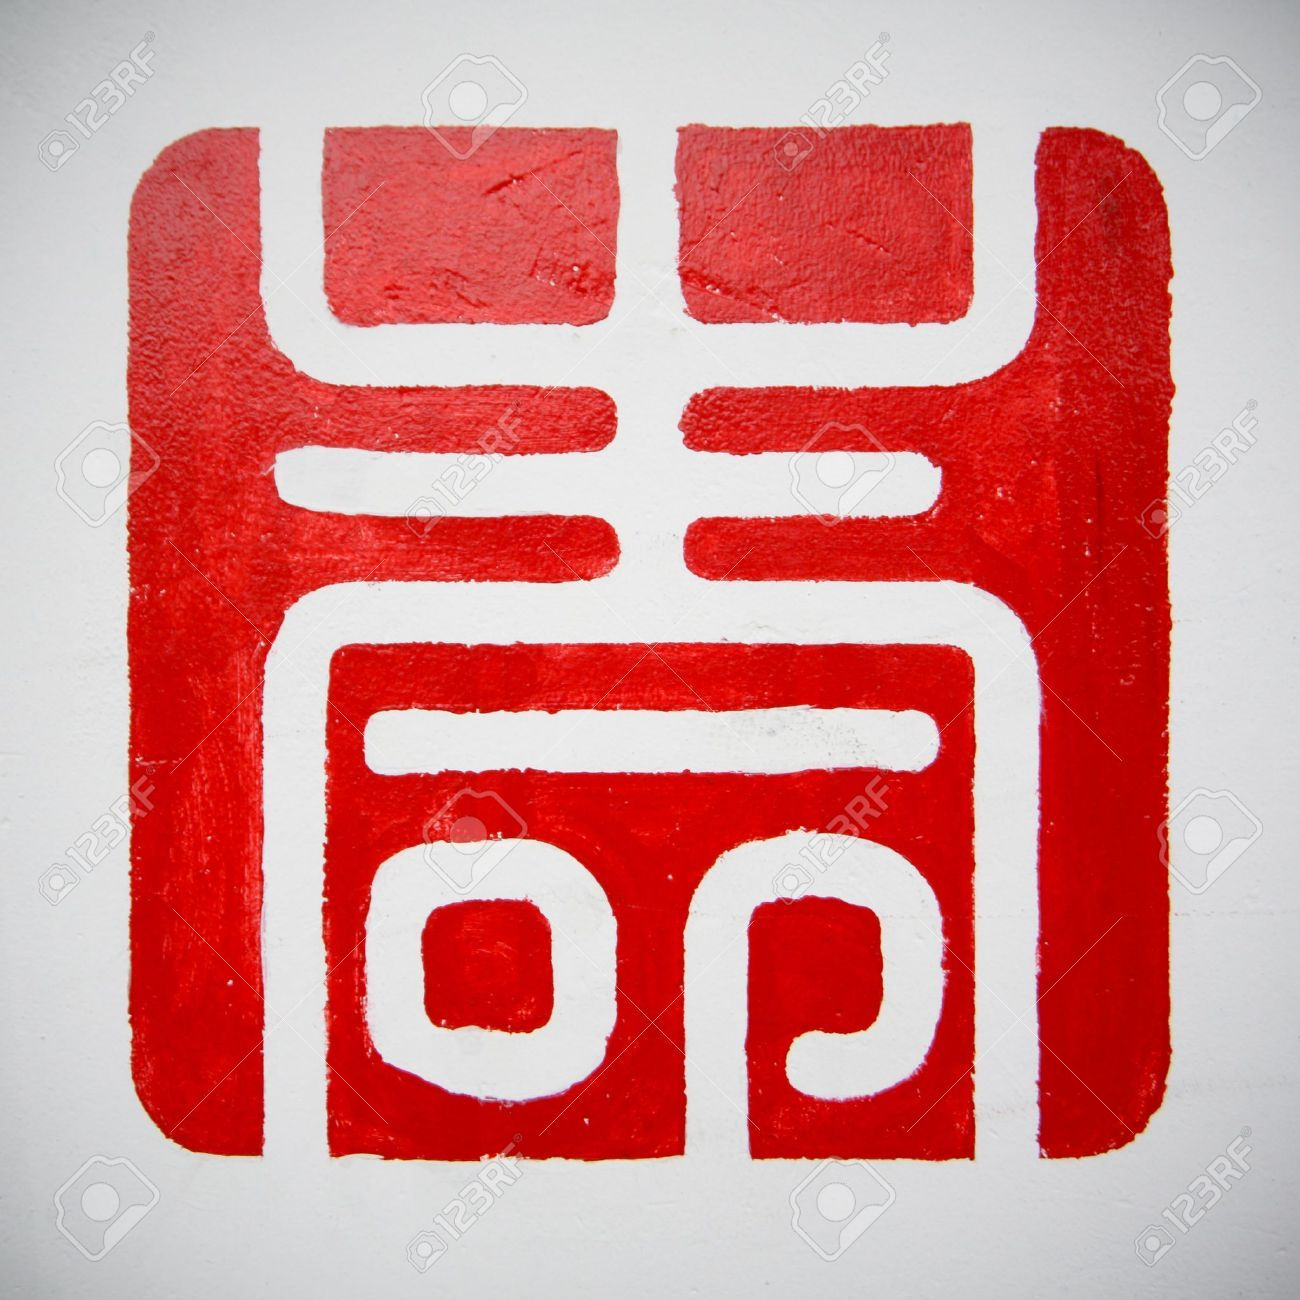 Longevity chinese symbol google search gifts pinterest picture of chinese characters longevity health symbol background stock photo images and stock photography biocorpaavc Gallery